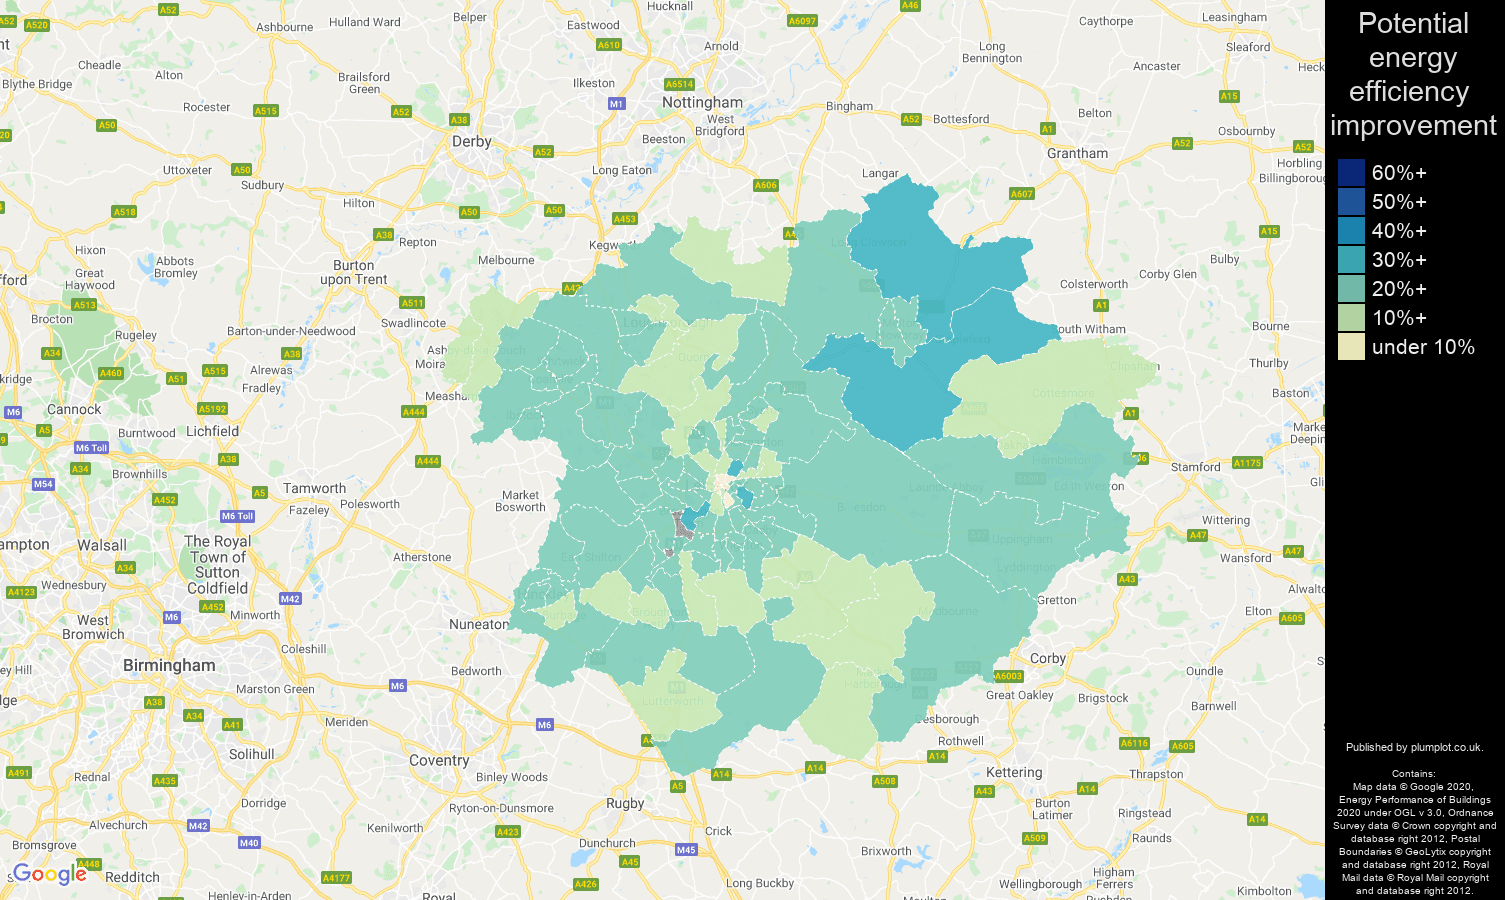 Leicester map of potential energy efficiency improvement of properties